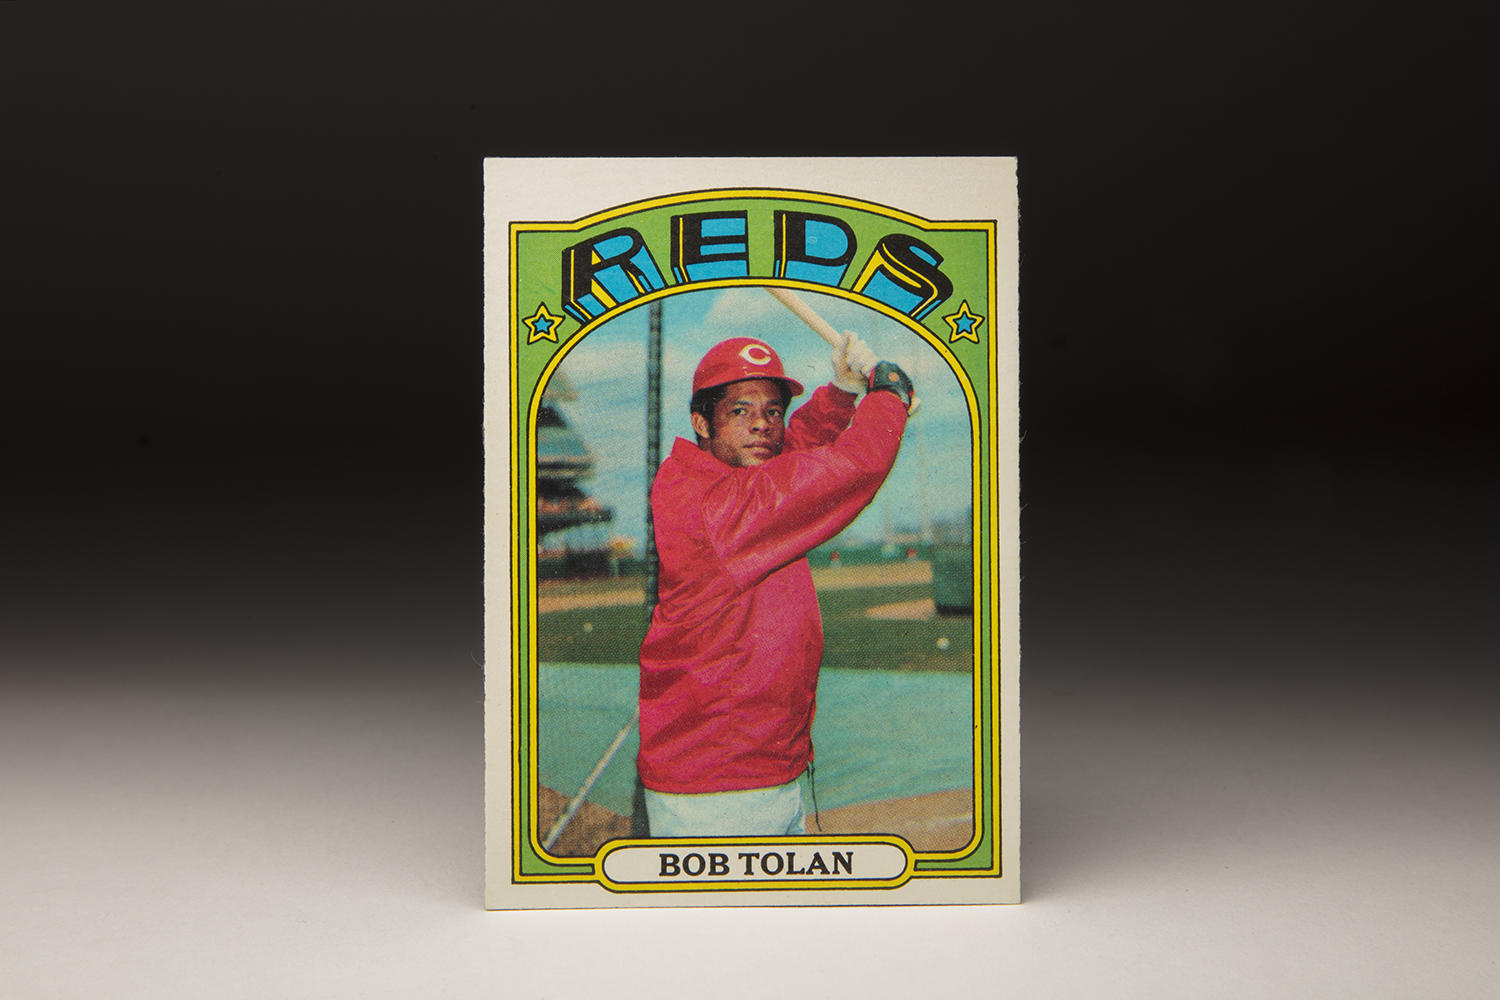 Bobby Tolan's 1972 Topps card showcases many unique features, like his high batting stance and colorful windbreaker. (By Photographer Milo Stewart Jr./National Baseball Hall of Fame and Museum)